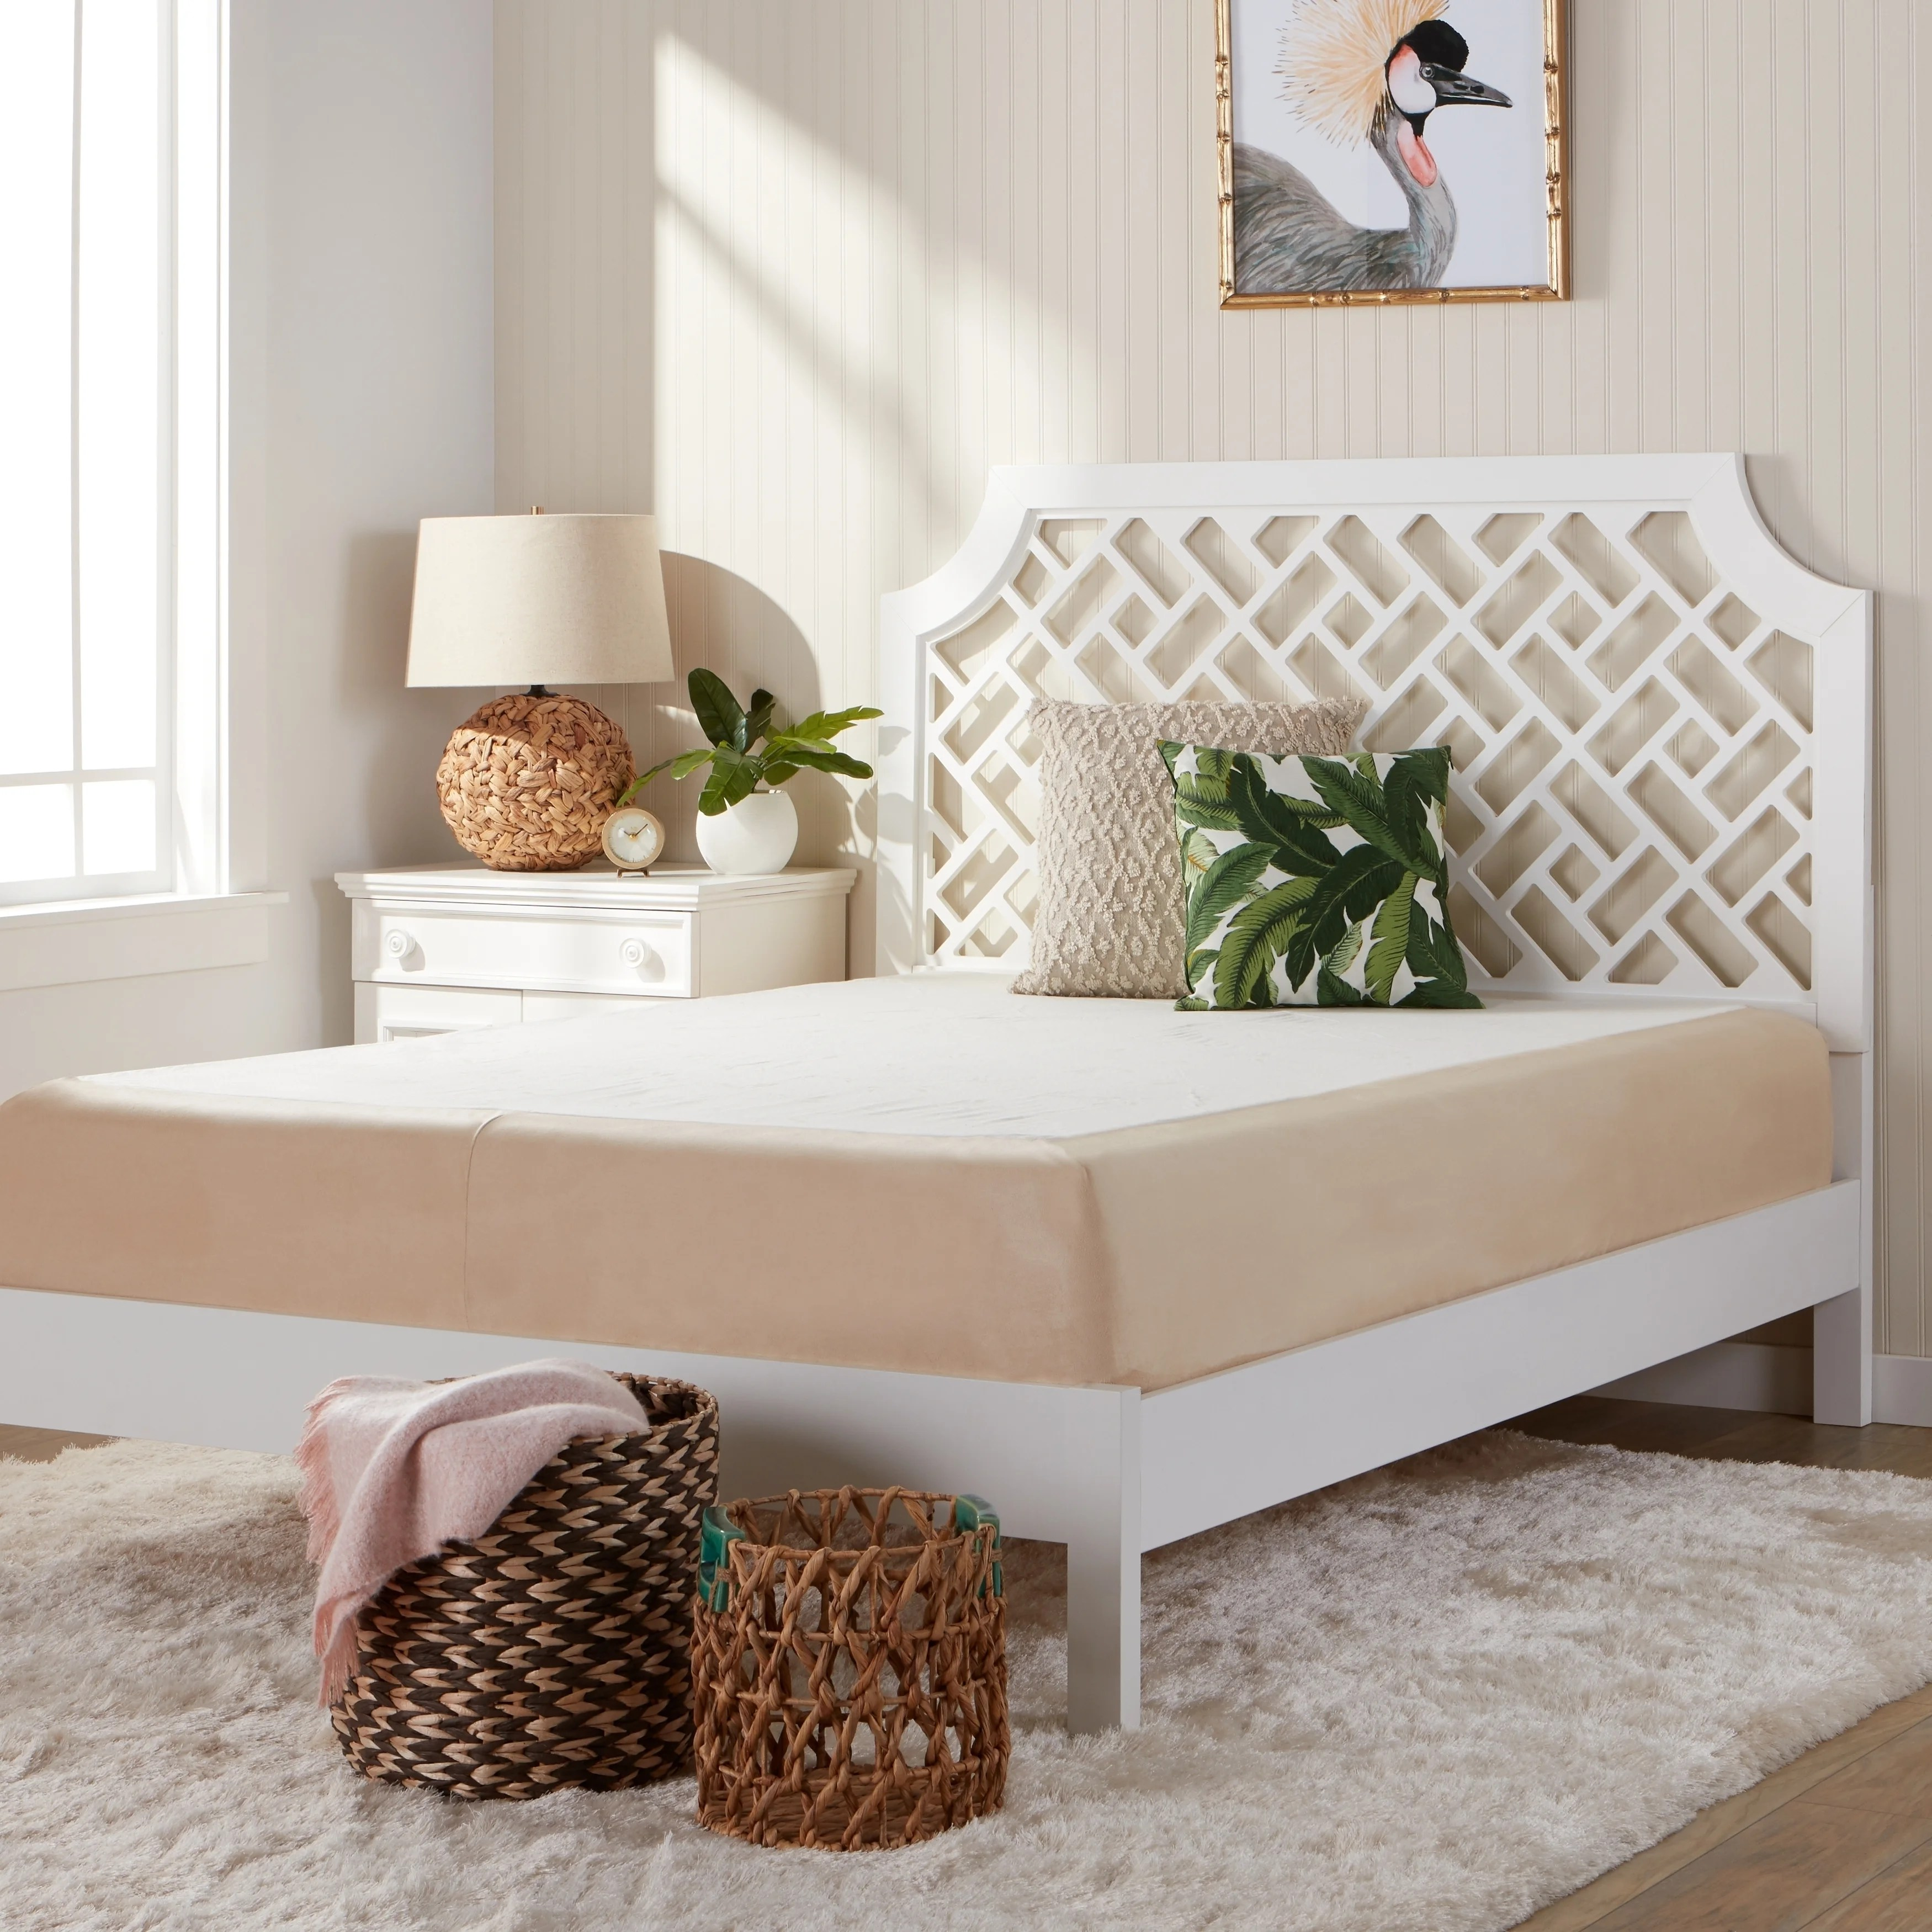 Dreams Mattress Guarantee Comfort Dreams Select A Firmness 11 Inch Gel Memory Foam Mattress